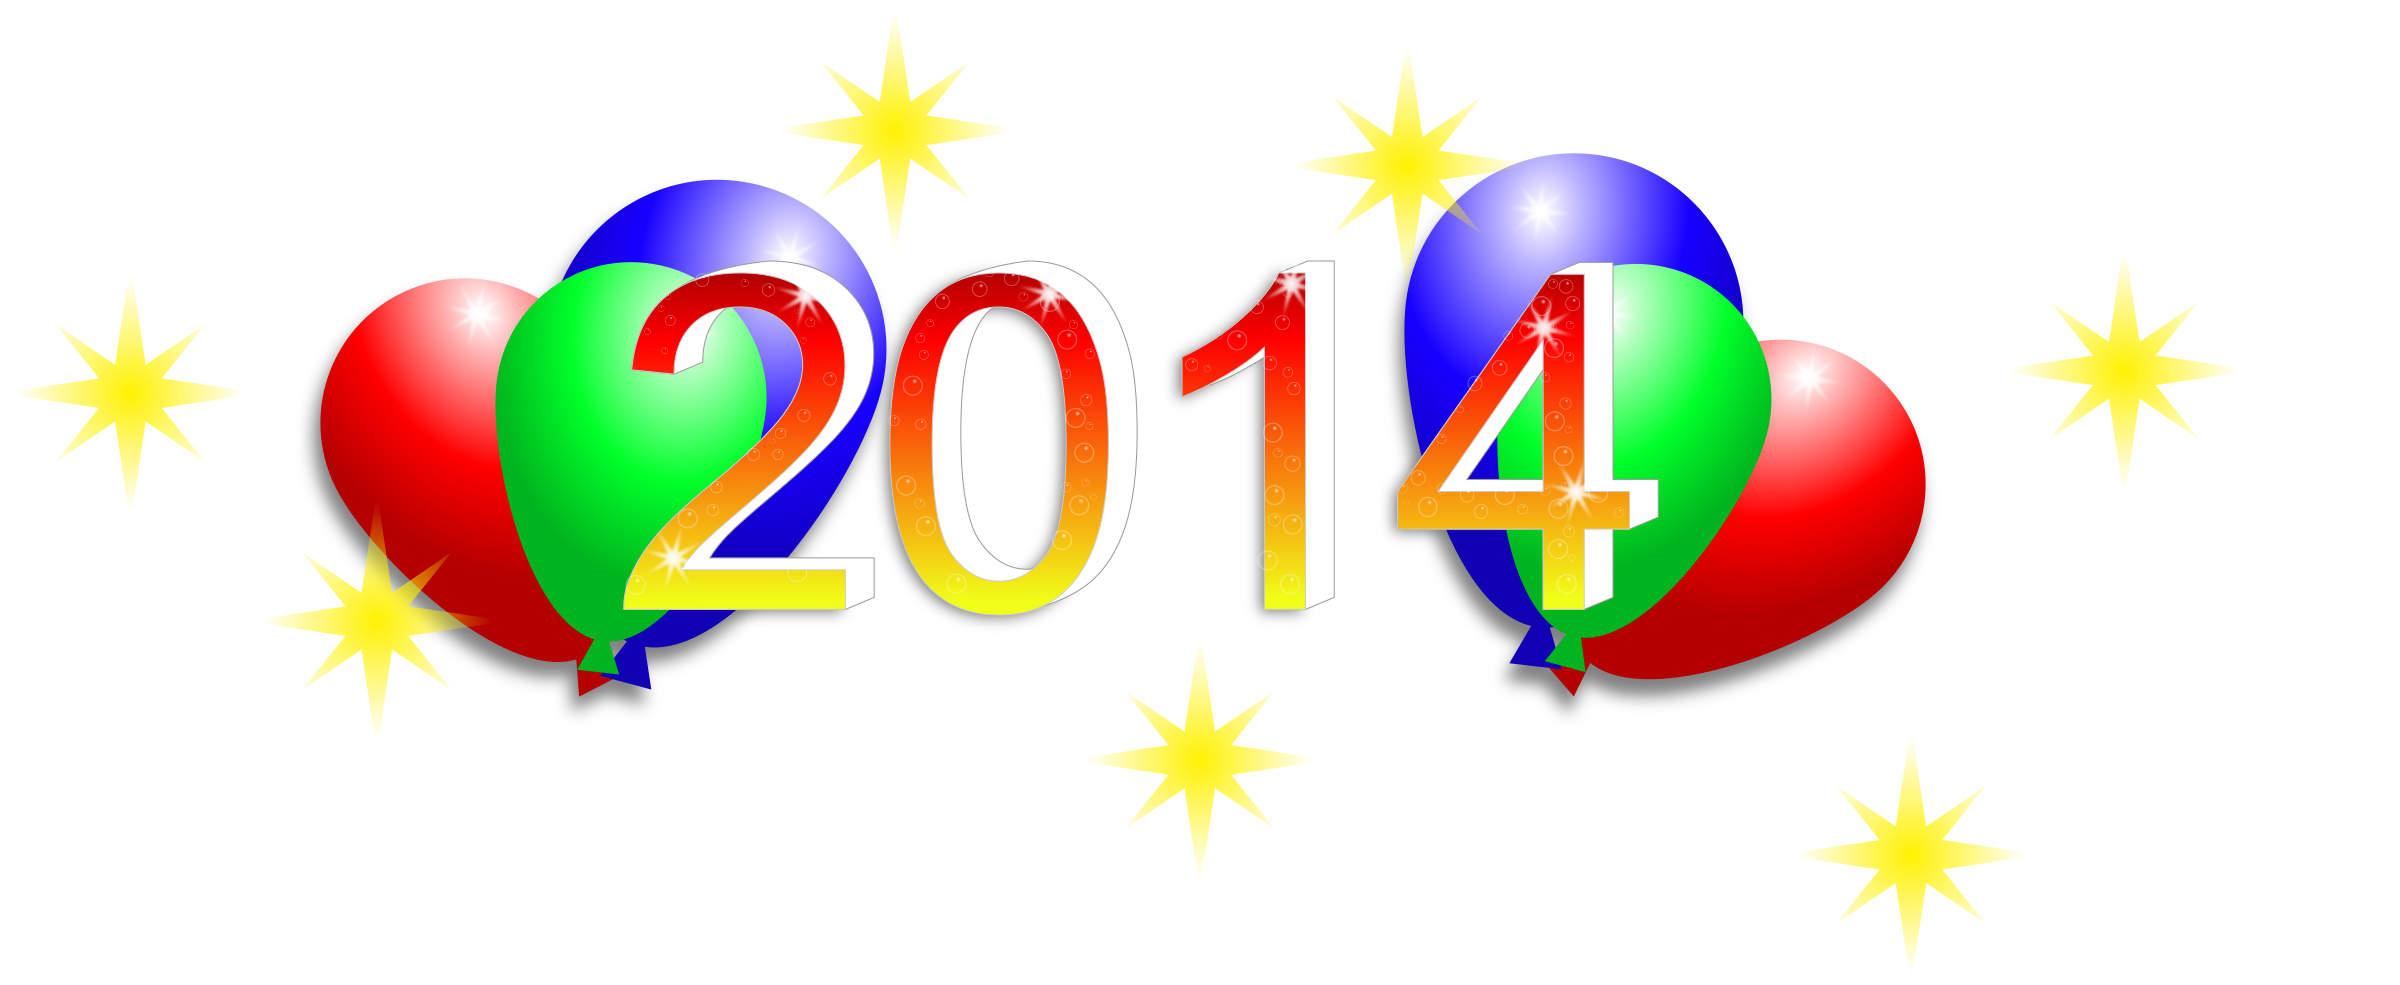 New Year's Eve 2014 Clipart.